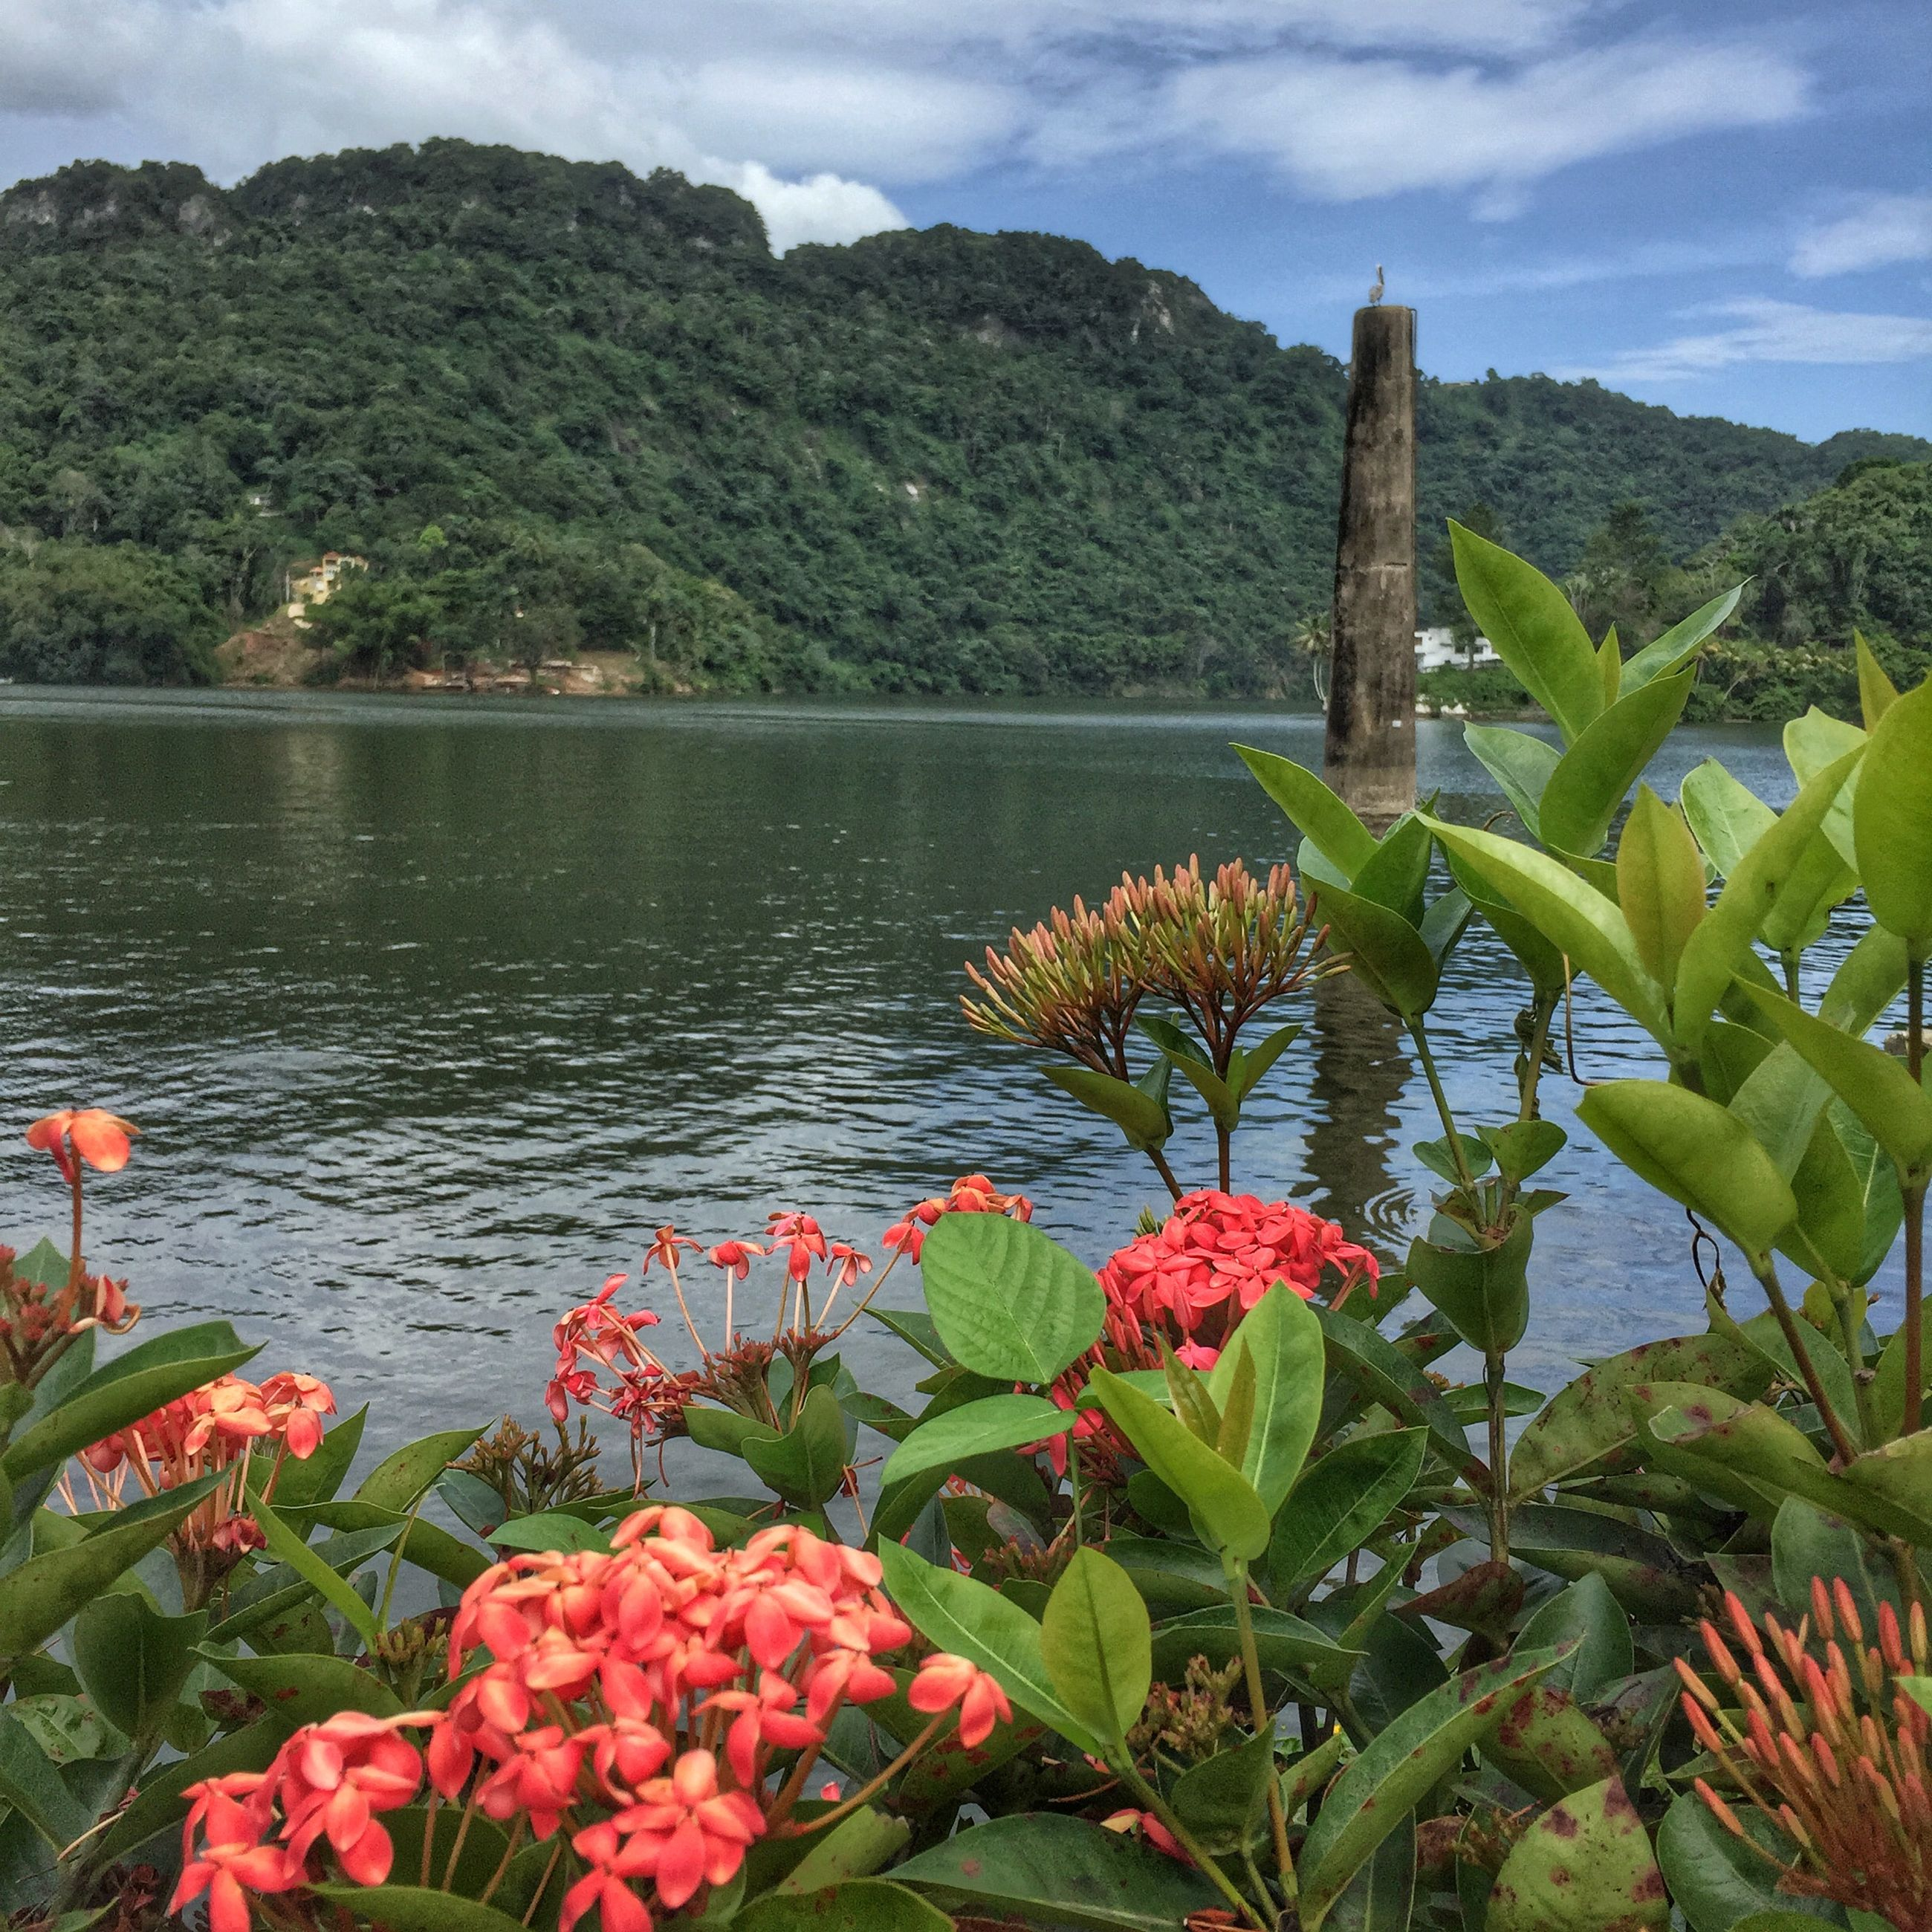 flower, beauty in nature, growth, sky, plant, water, nature, freshness, tranquil scene, tranquility, scenics, cloud - sky, mountain, green color, tree, lake, fragility, leaf, blooming, cloud